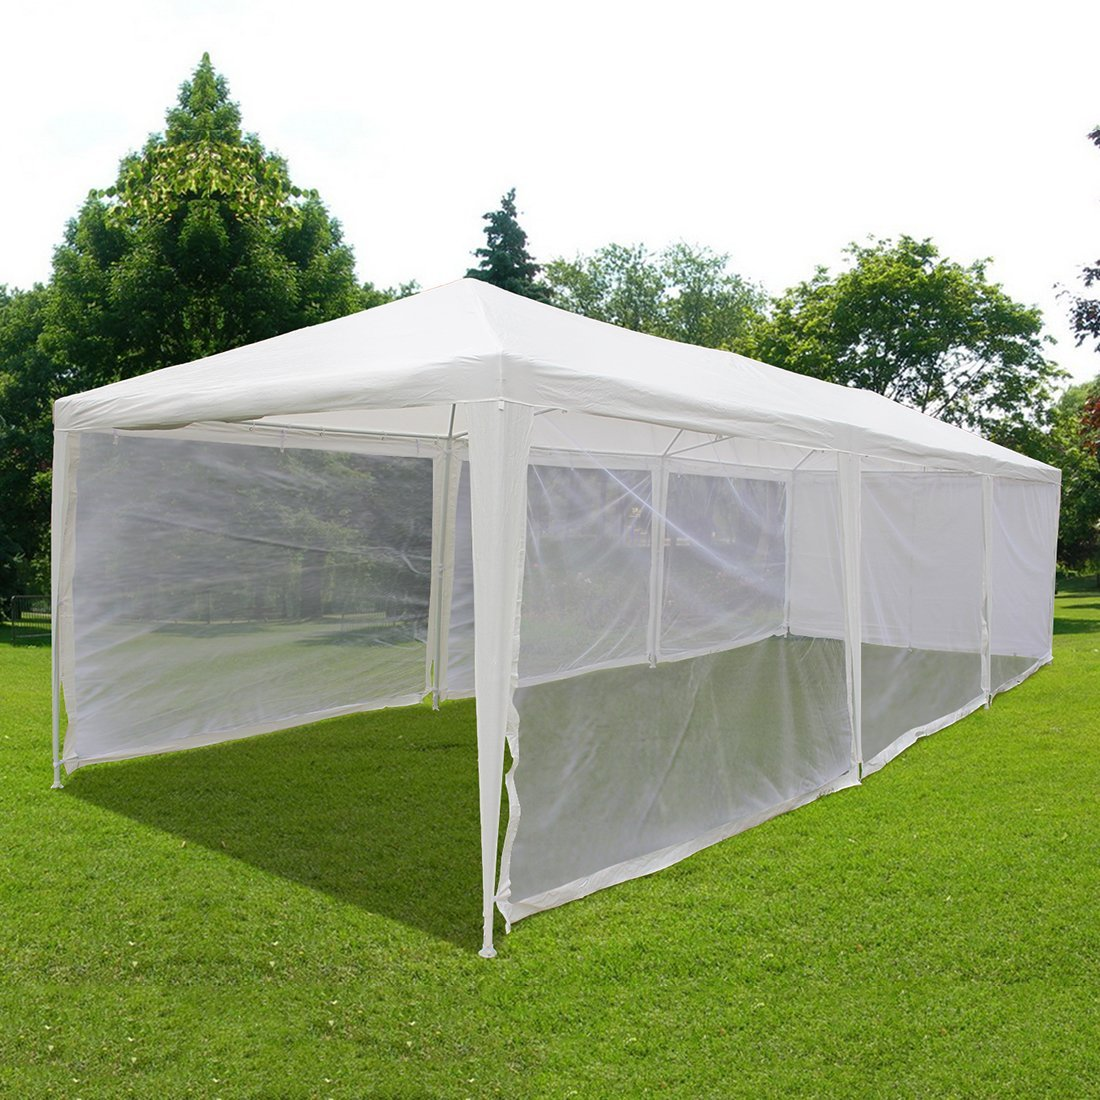 Quictent 10X30 Outdoor Canopy Gazebo Party Wedding tent Screen House Sun Shade Shelter with Fully Enclosed  sc 1 st  Walmart & Quictent 10X30 Outdoor Canopy Gazebo Party Wedding tent Screen ...